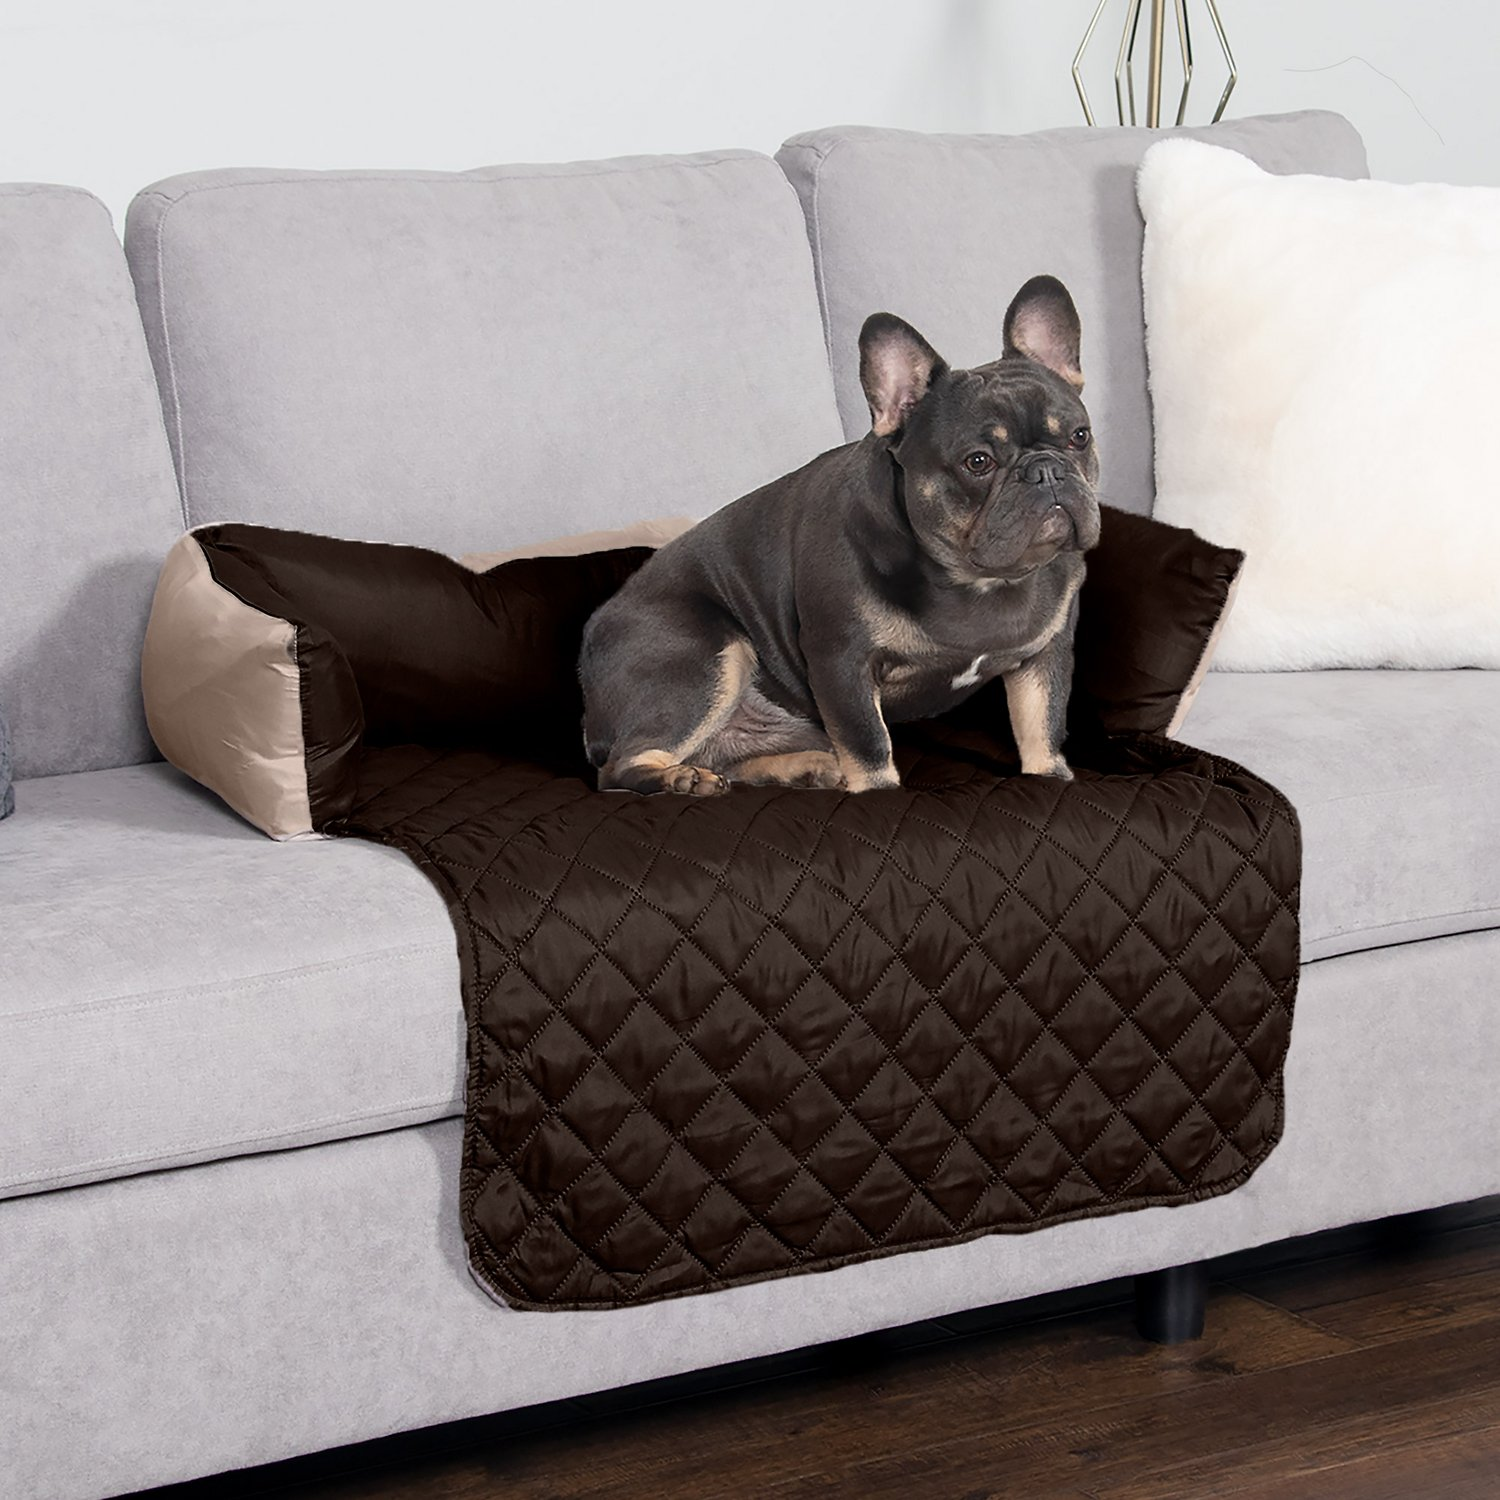 Furhaven Sofa Buddy Dog Amp Cat Bed Furniture Cover